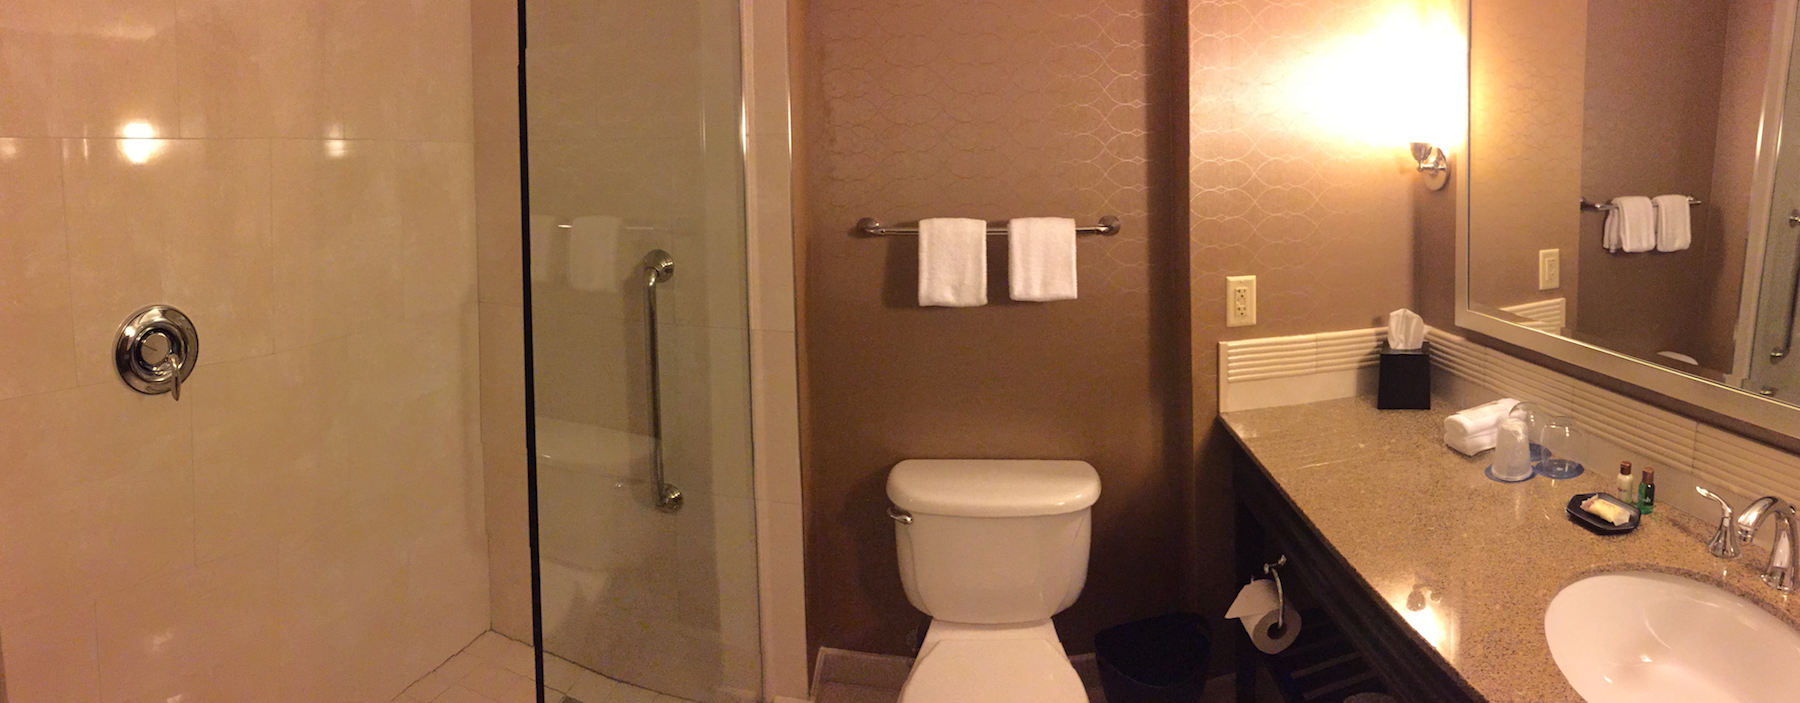 The bathroom was understated and contemporary  (click to enlarge)